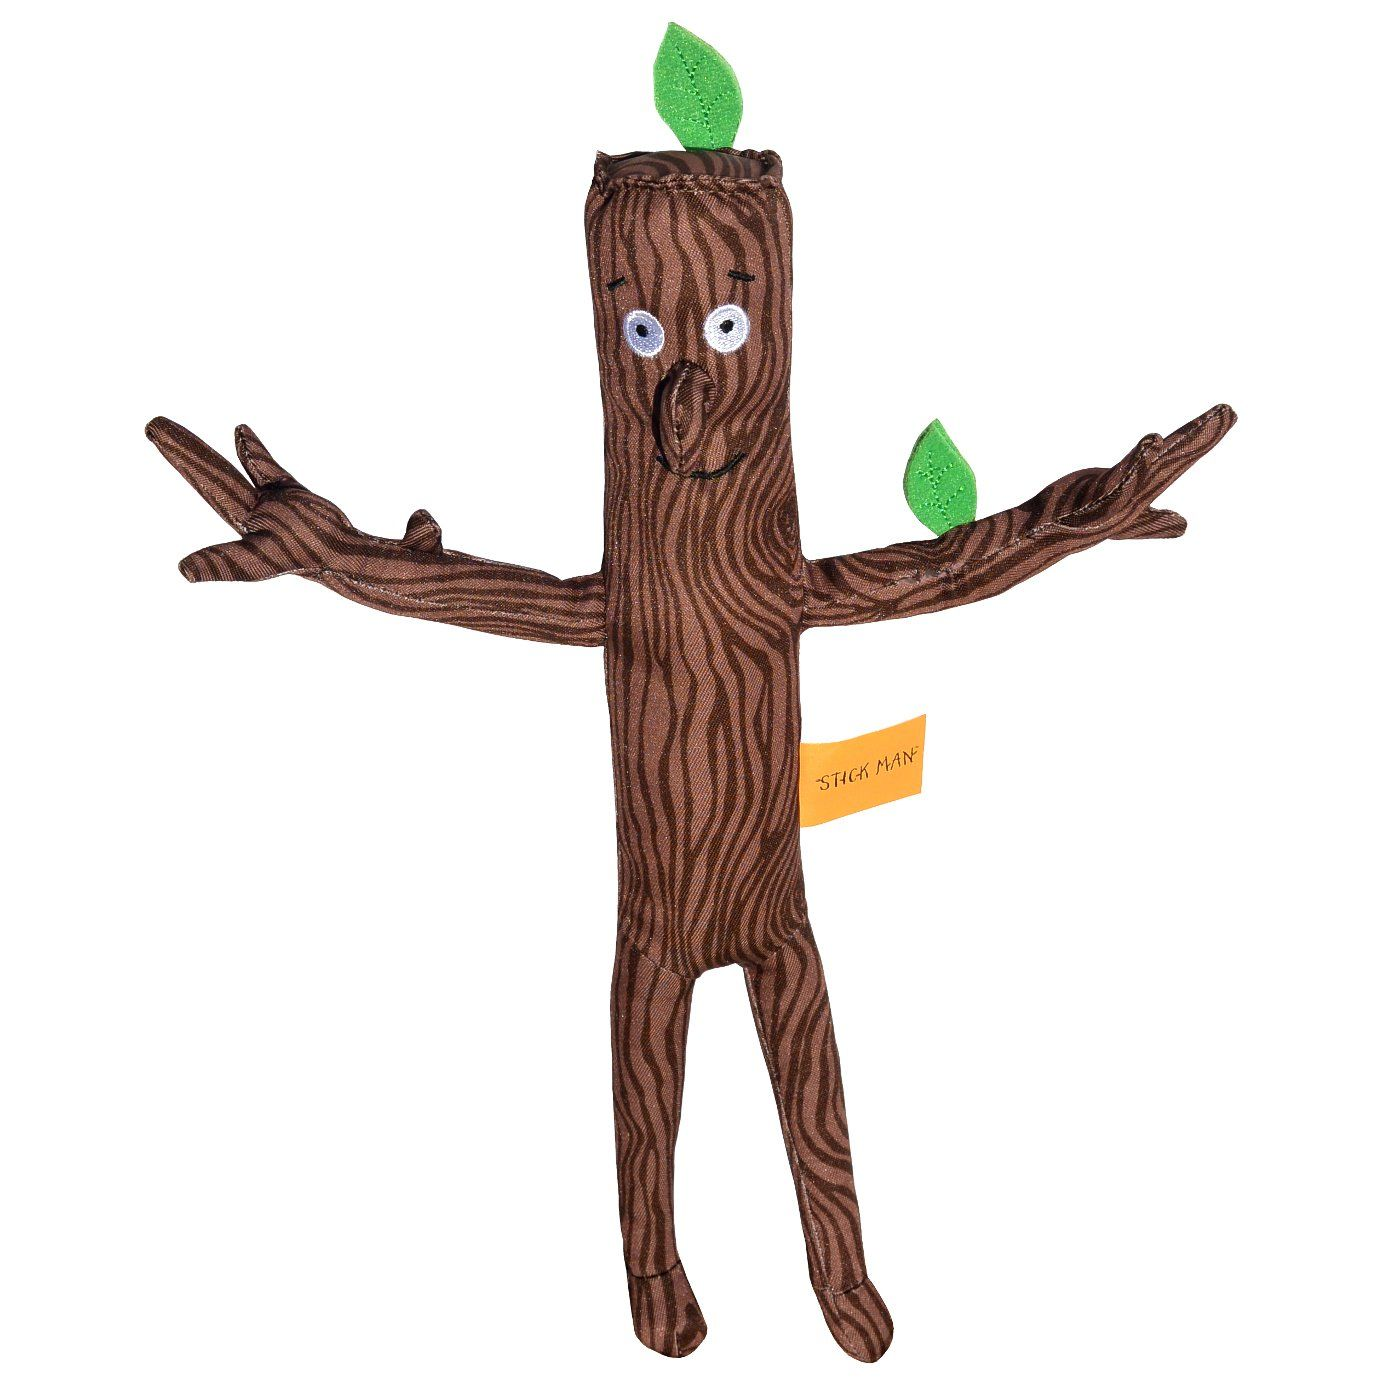 Stick Man Plush Toy